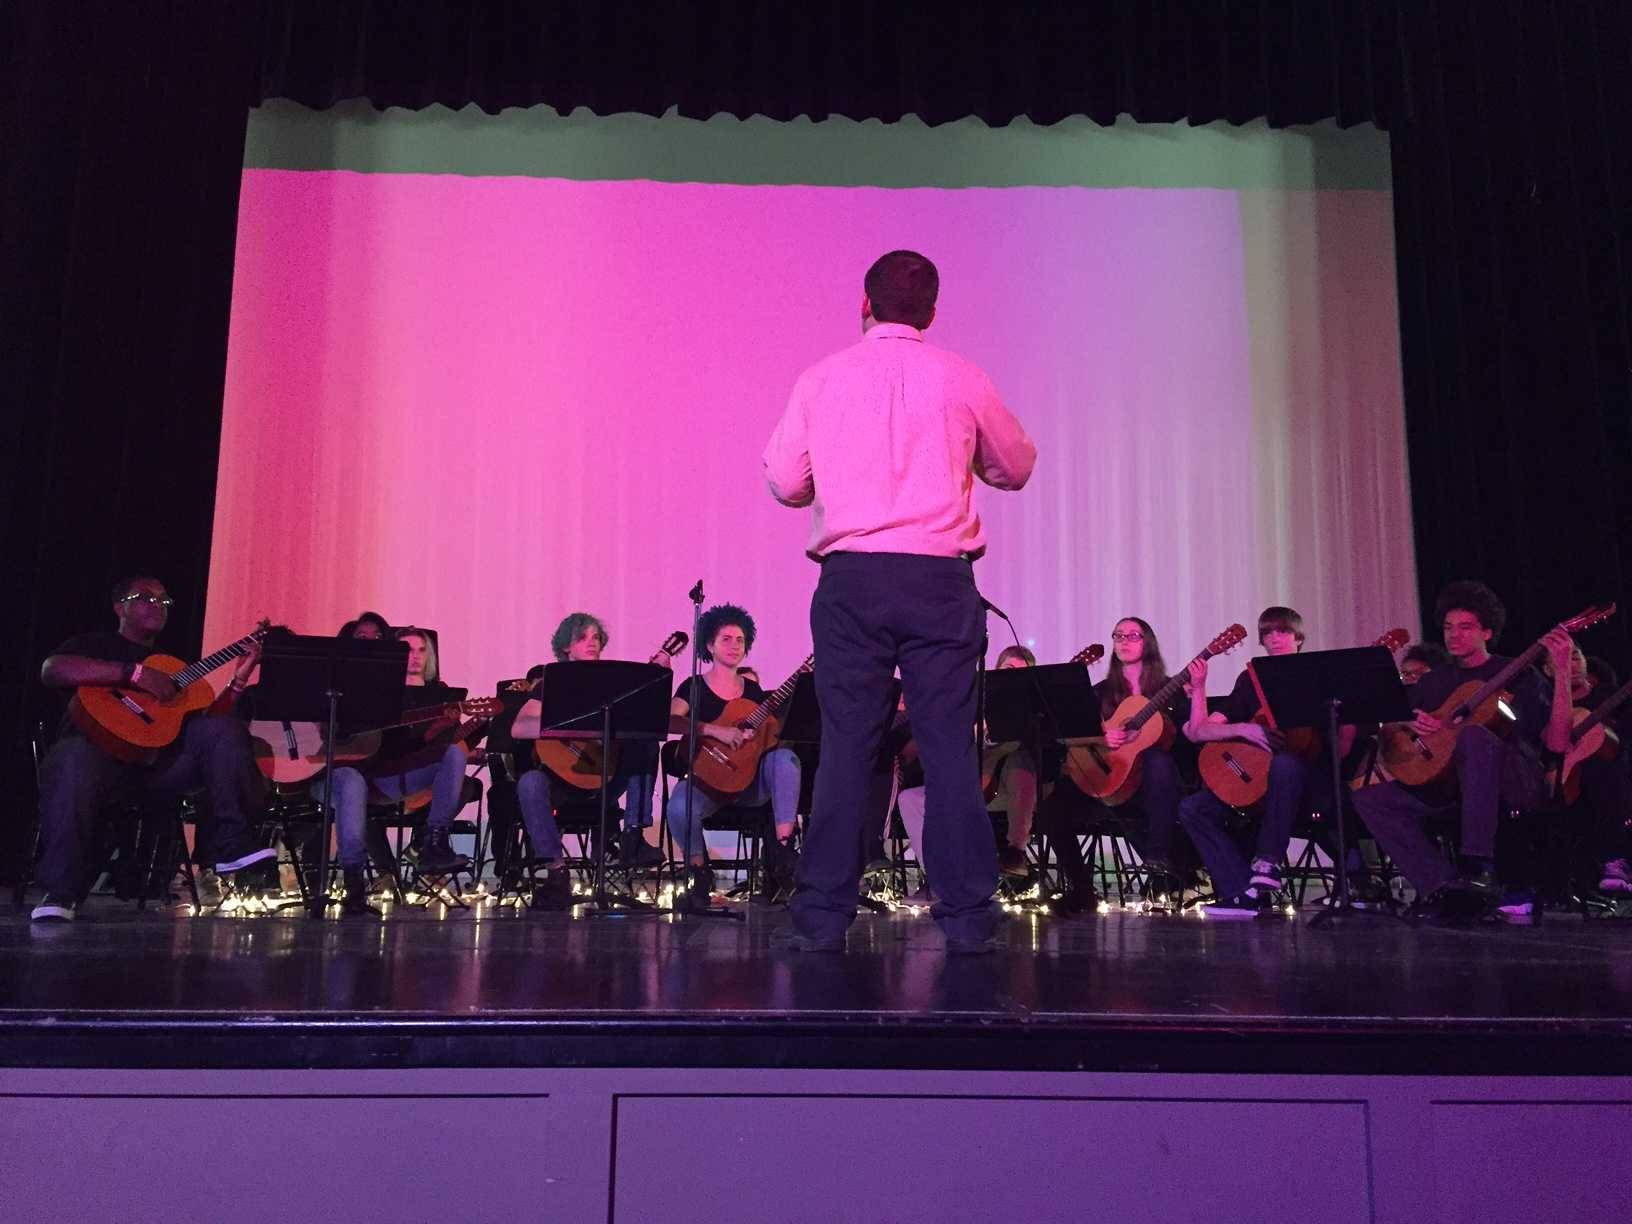 Dave Hagan, Guitar/Band, conducts high school guitar students. Hagan explained that each group of students performs a ten minute set. This also depends on what level students are at. Older students play longer pieces, while younger students play shorter pieces.